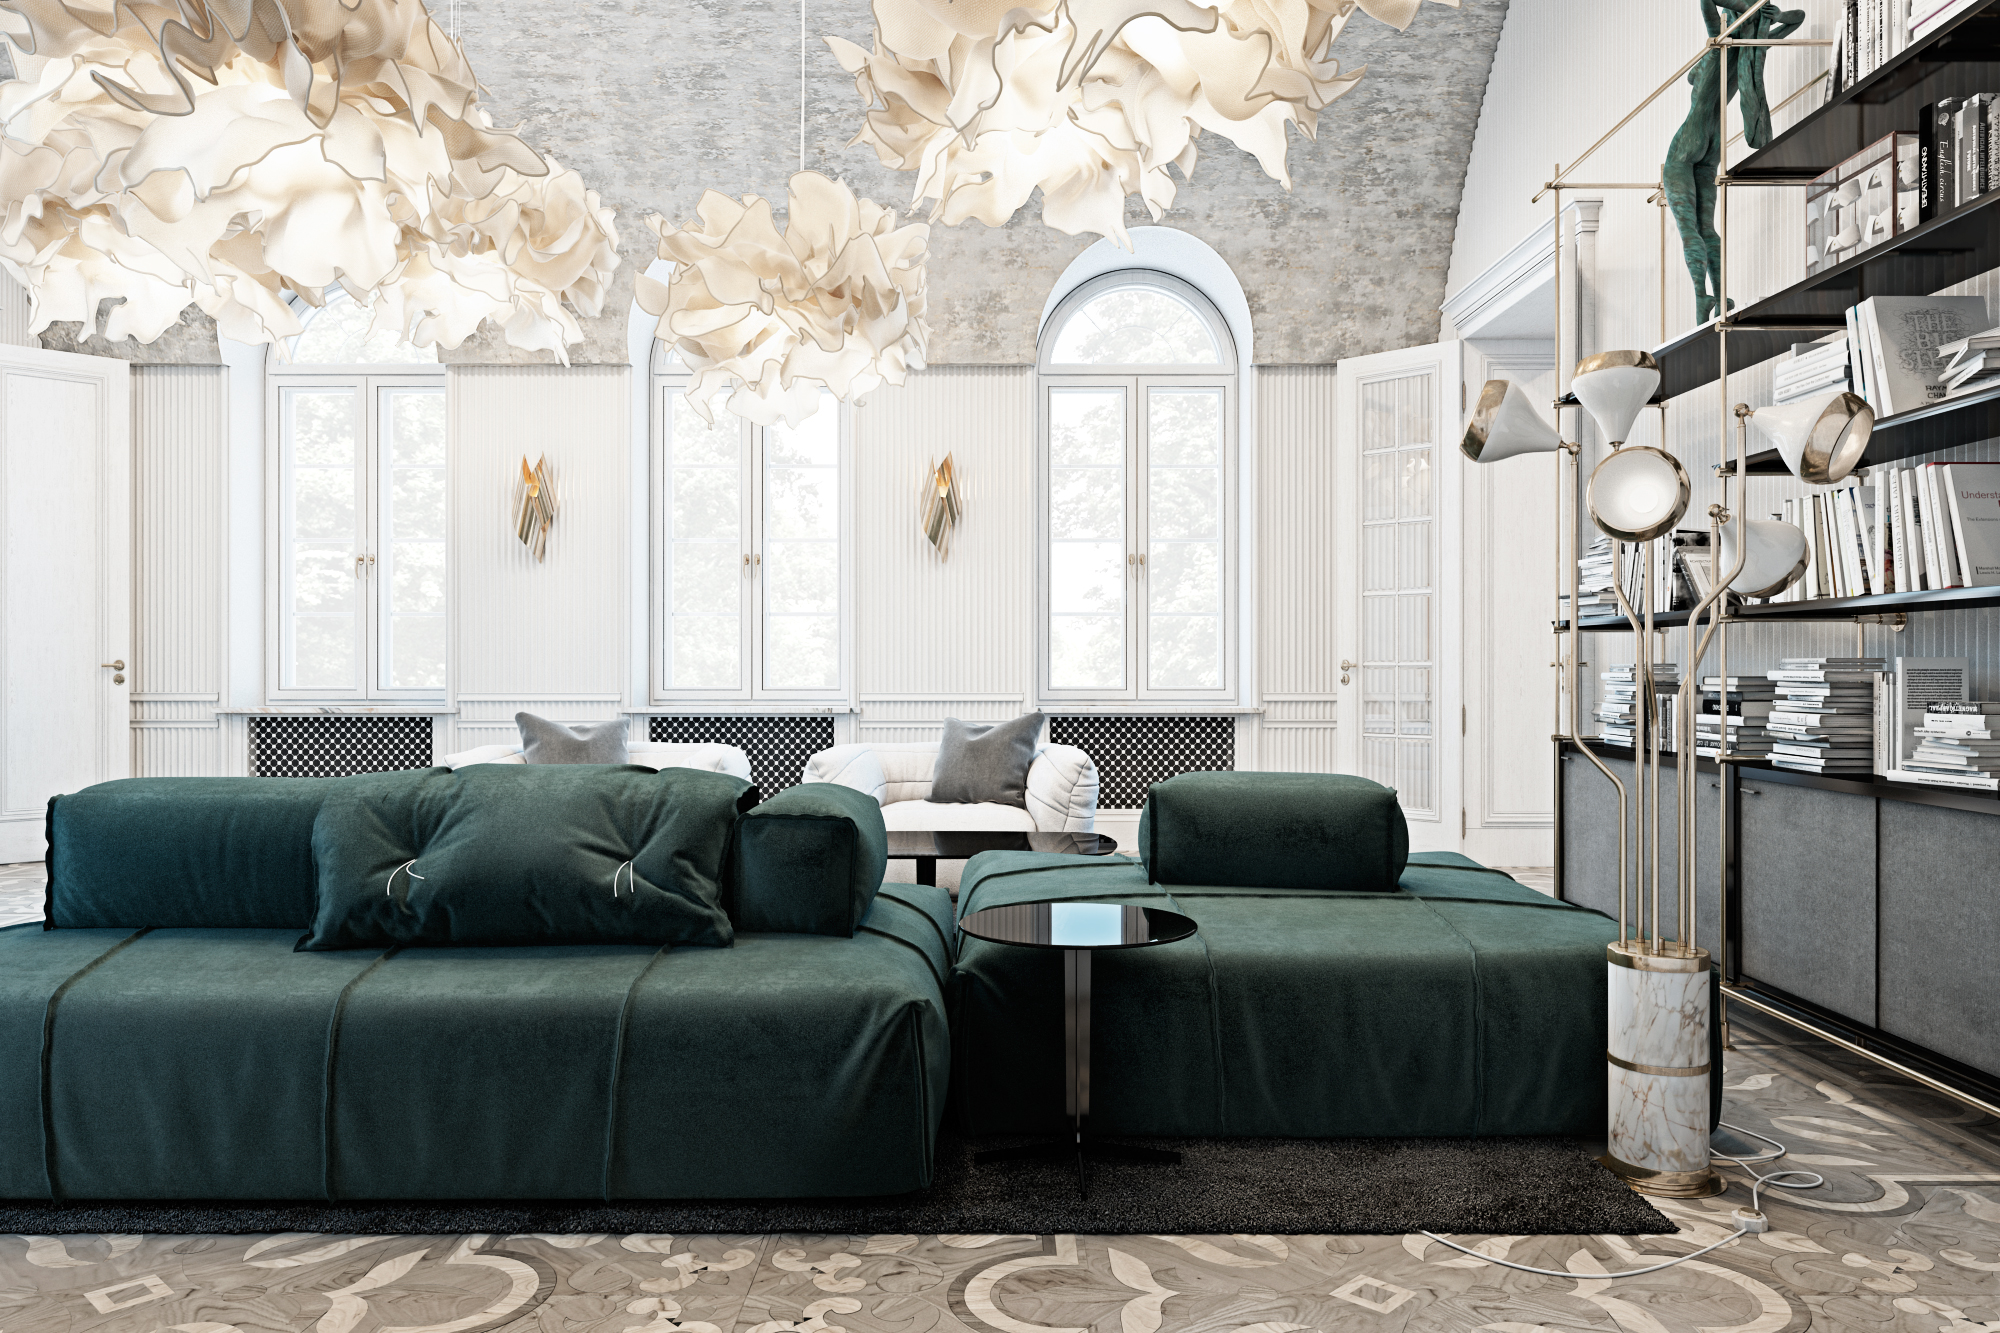 Exquisite private residence project in Italy Nate Berkus Inspirations from Nate Berkus Exquisite private residence project in Italy Nate Berkus Inspirations from Nate Berkus Exquisite private residence project in Italy